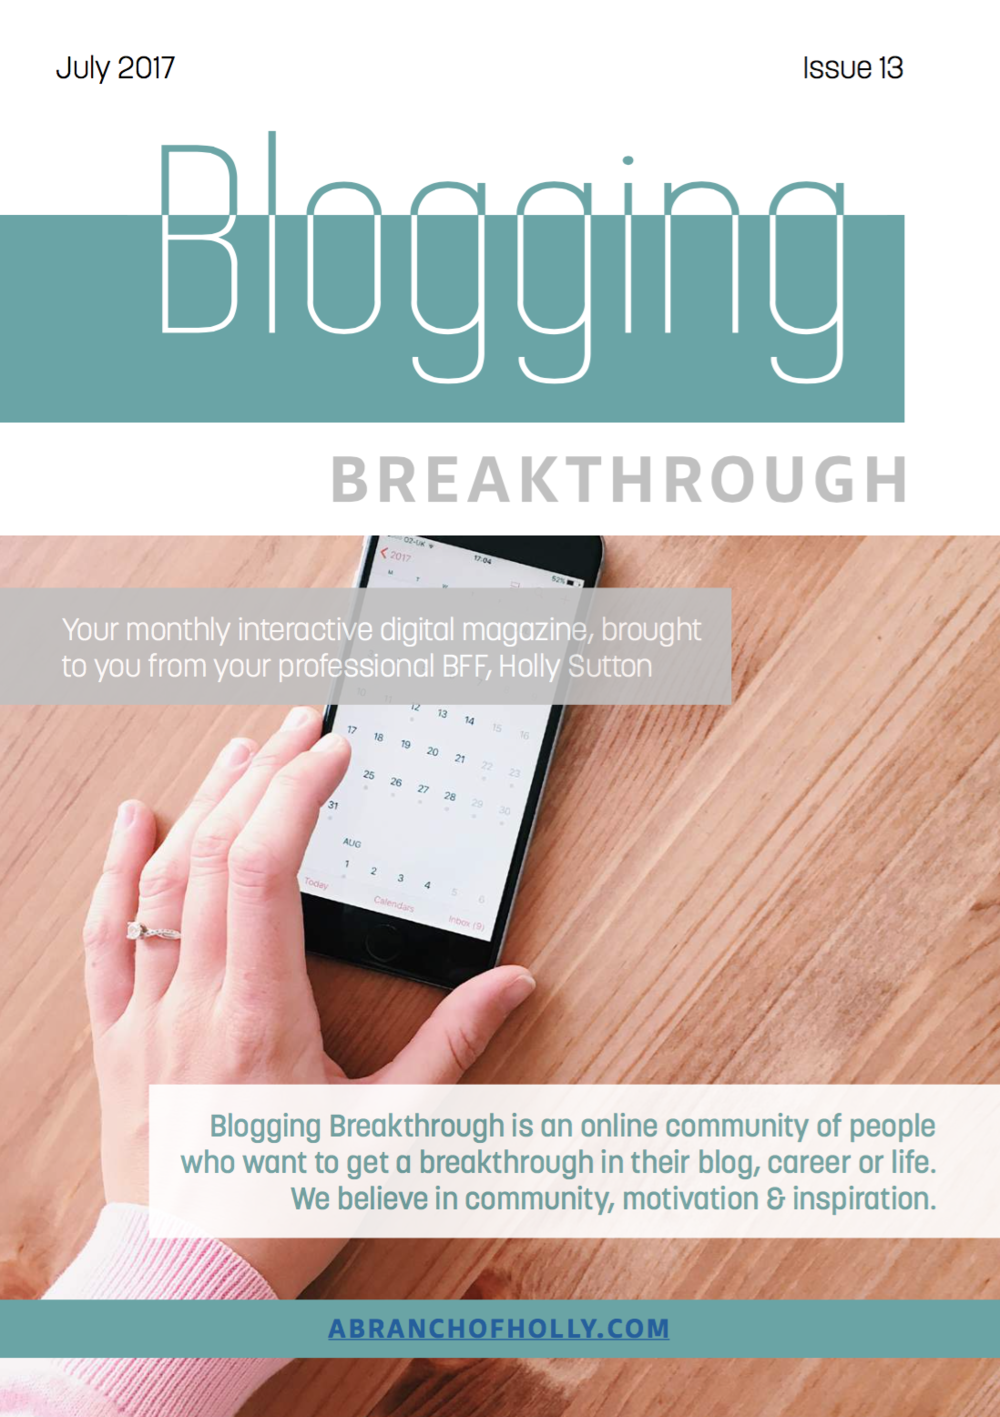 blogging breakthrough july 2018 issue 13